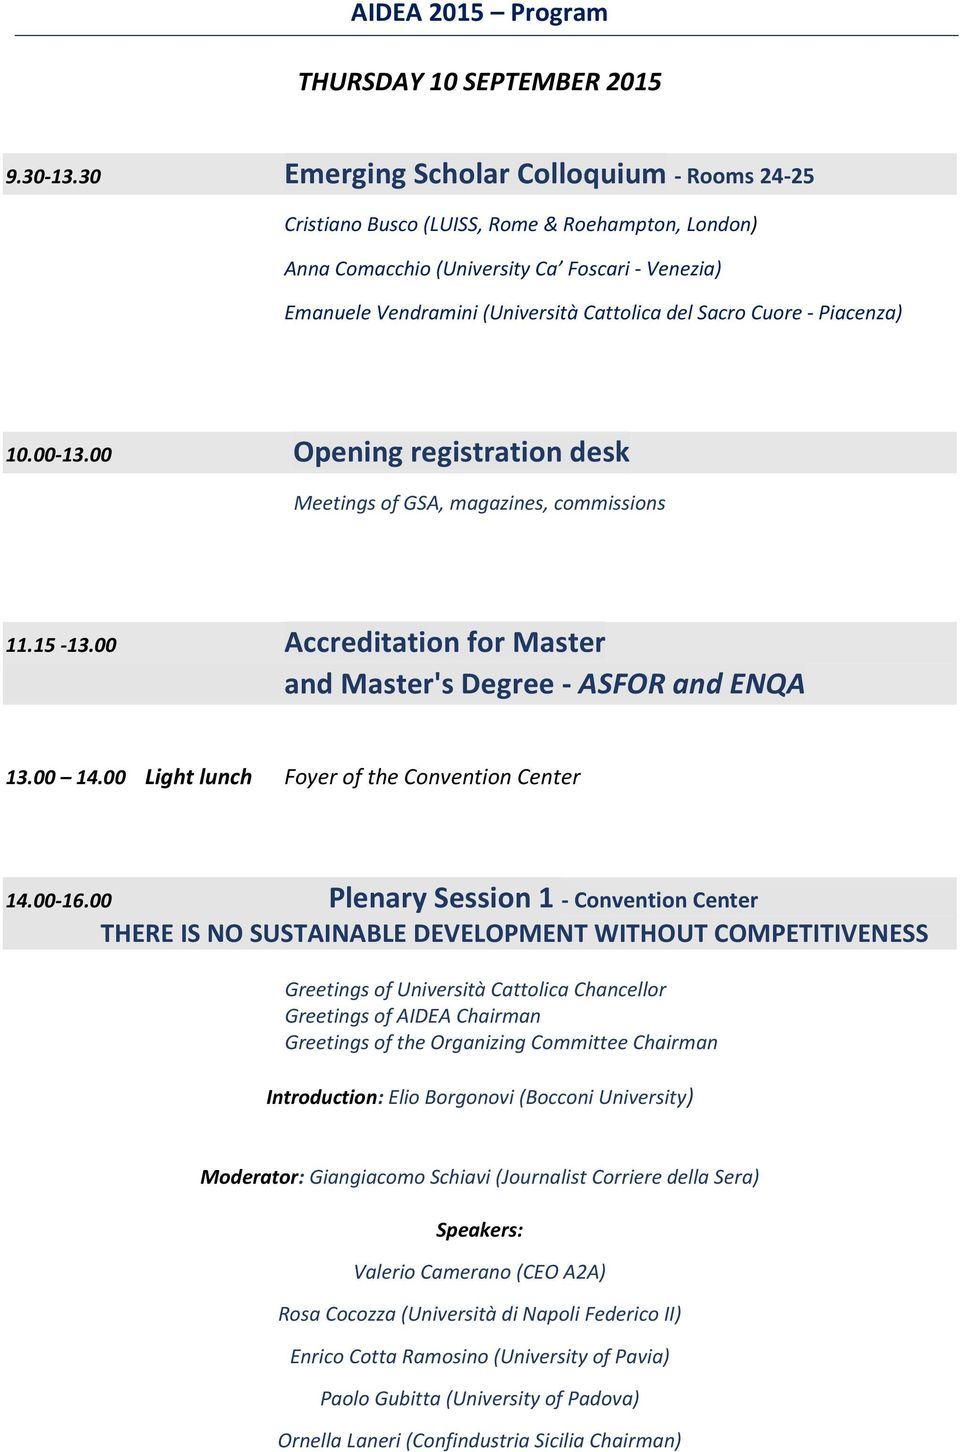 Cuore - Piacenza) 10.00-13.00 Opening registration desk Meetings of GSA, magazines, commissions 11.15-13.00 Accreditation for Master and Master's Degree - ASFOR and ENQA 13.00 14.